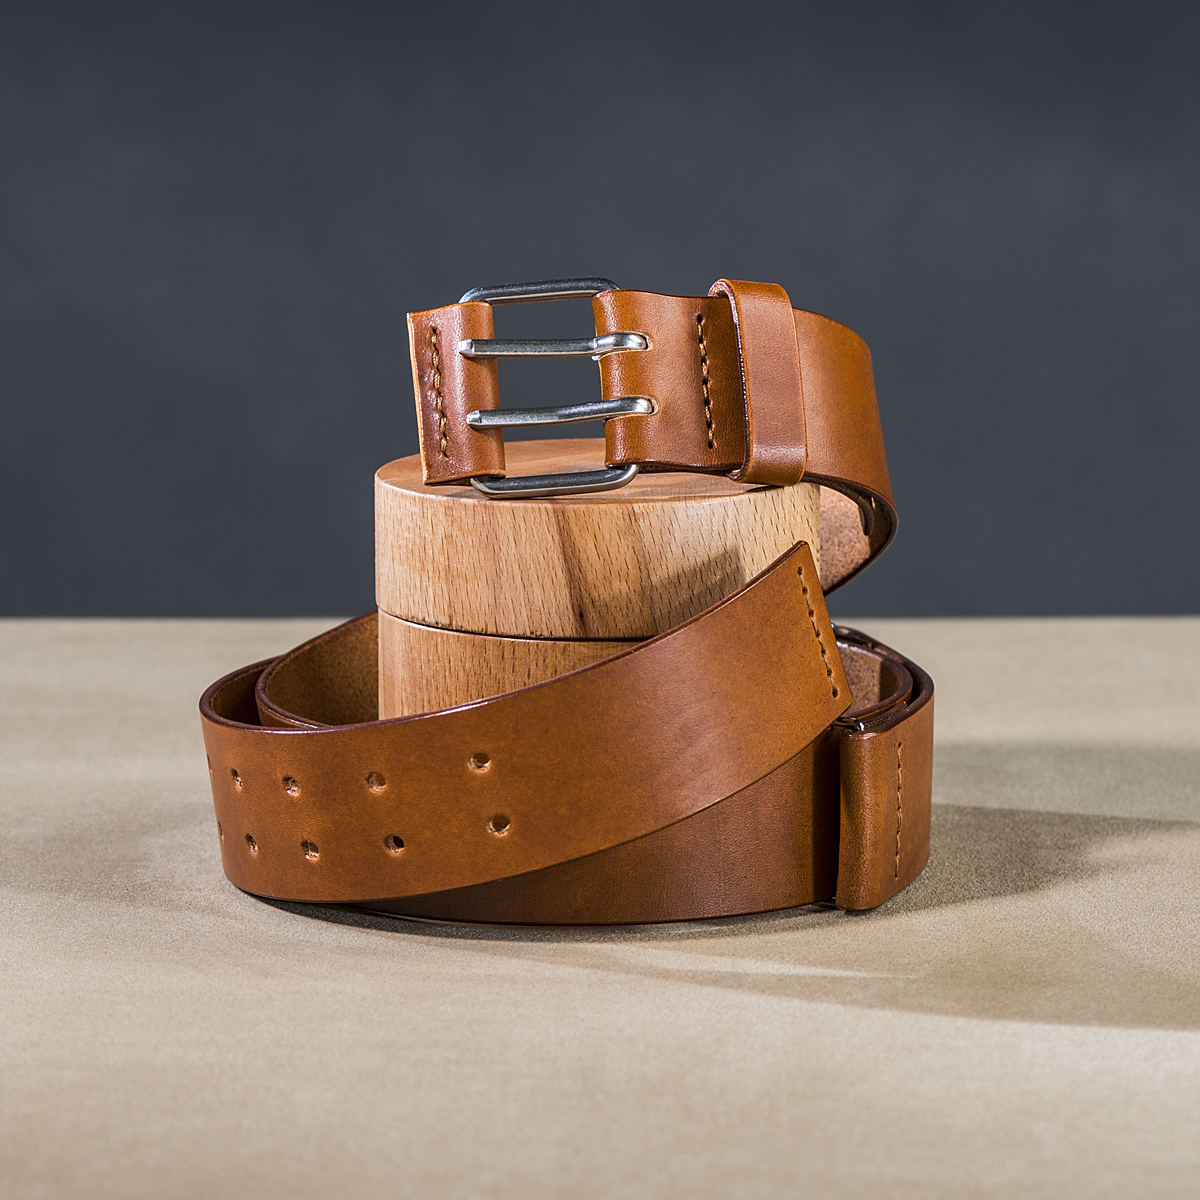 Leather belt for guys Caramel 1.